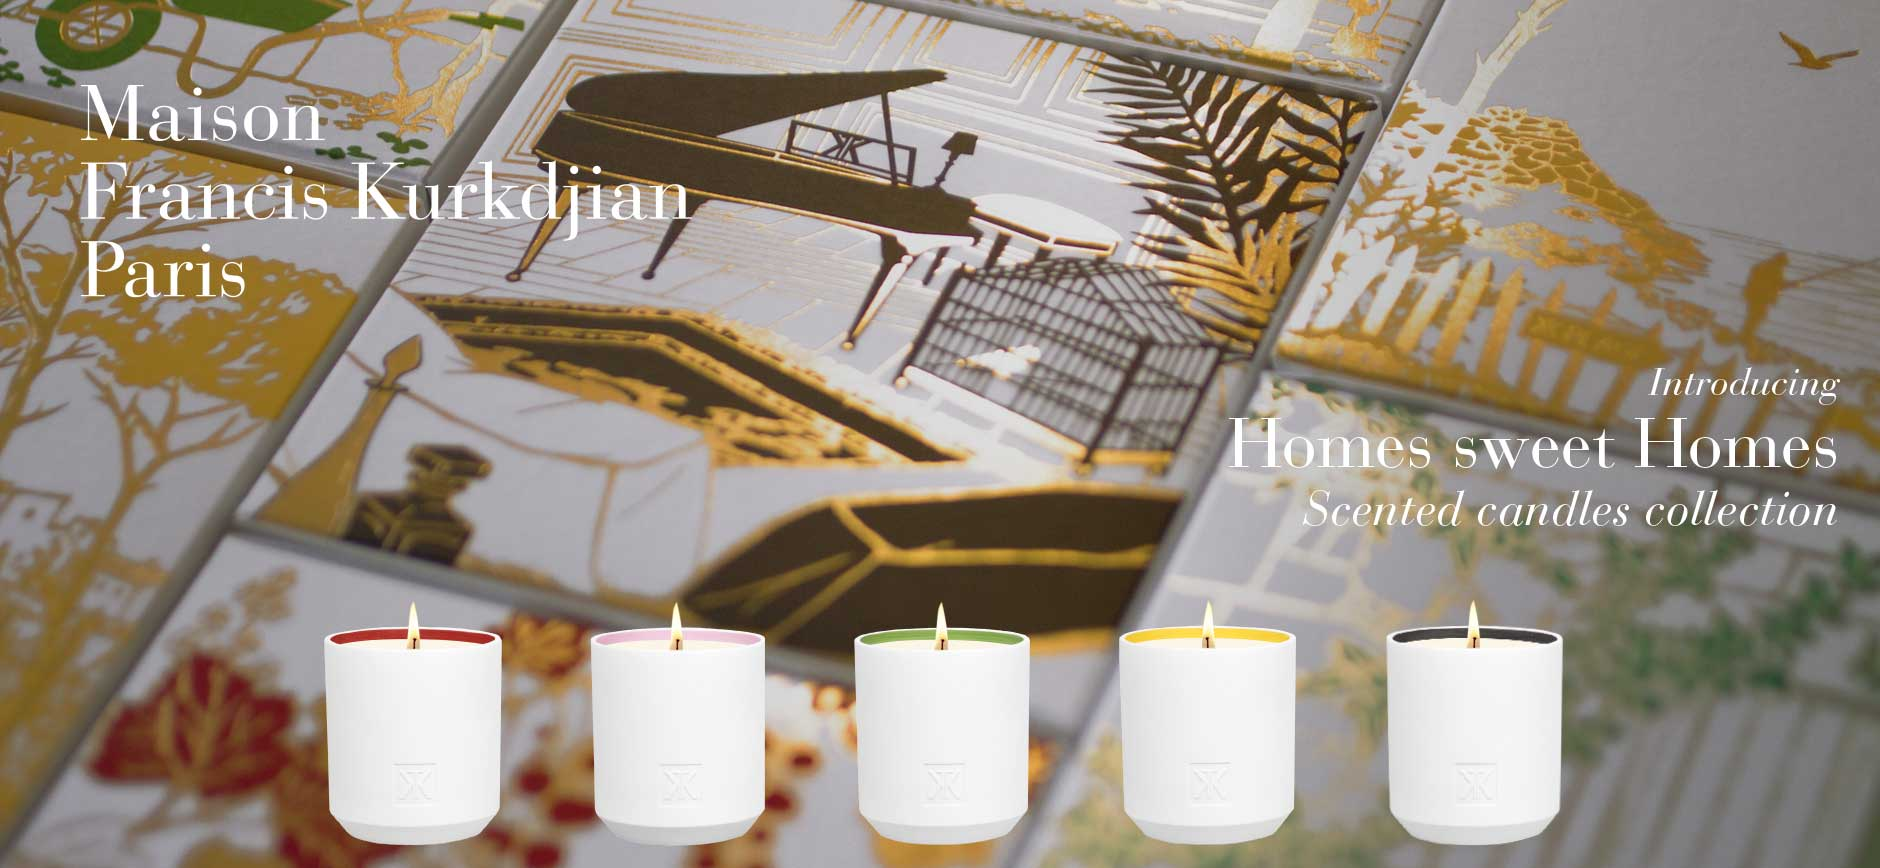 Maison Francis Kurkdjian Paris: Introducing Homes sweet Homes - Scented candles collection